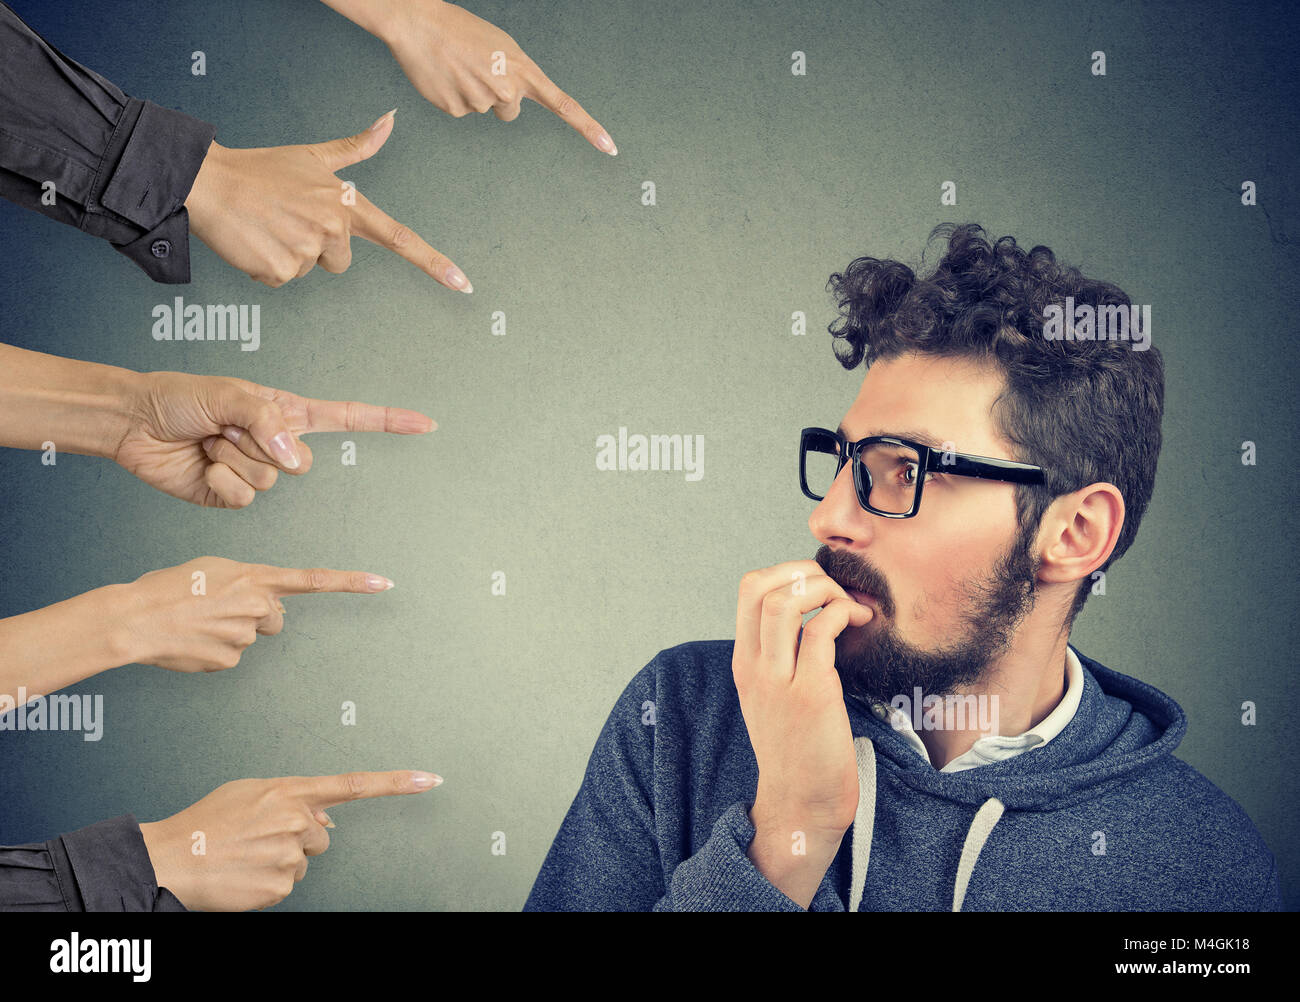 Anxious man judged by different hands. Concept of accusation of guilty guy. Negative human emotions face expression - Stock Image